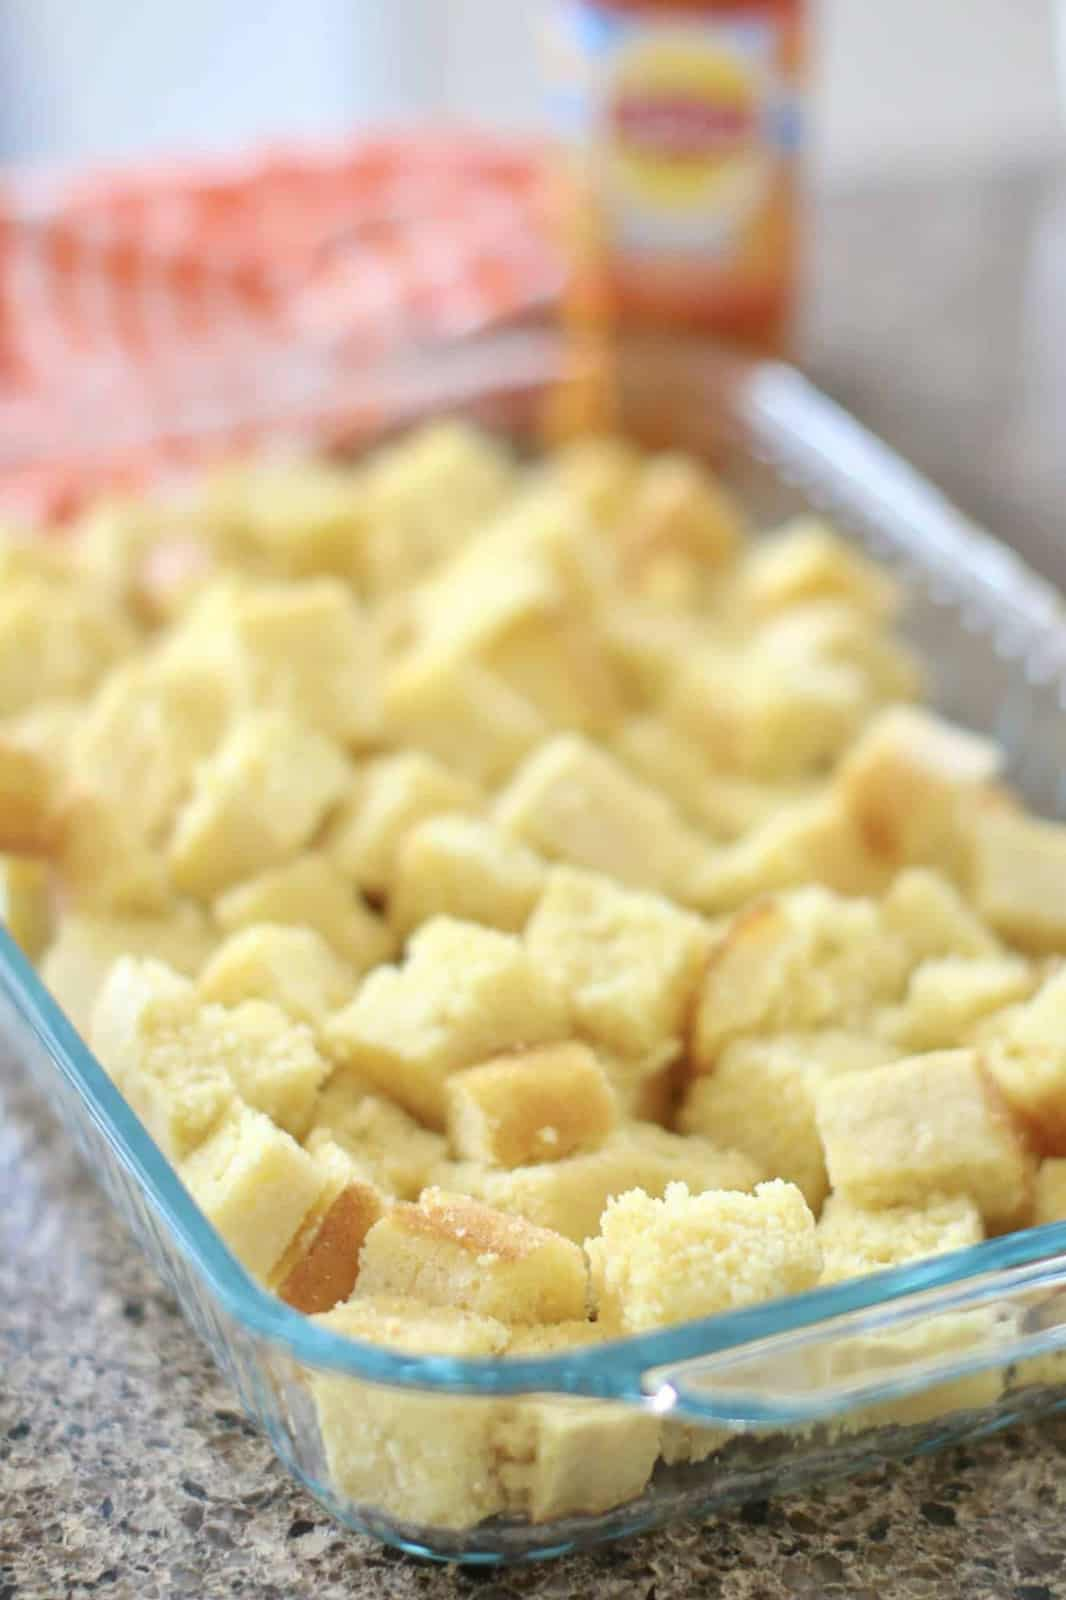 cubed pieces of cornbread shown layered in the bottom of a glass baking dish.